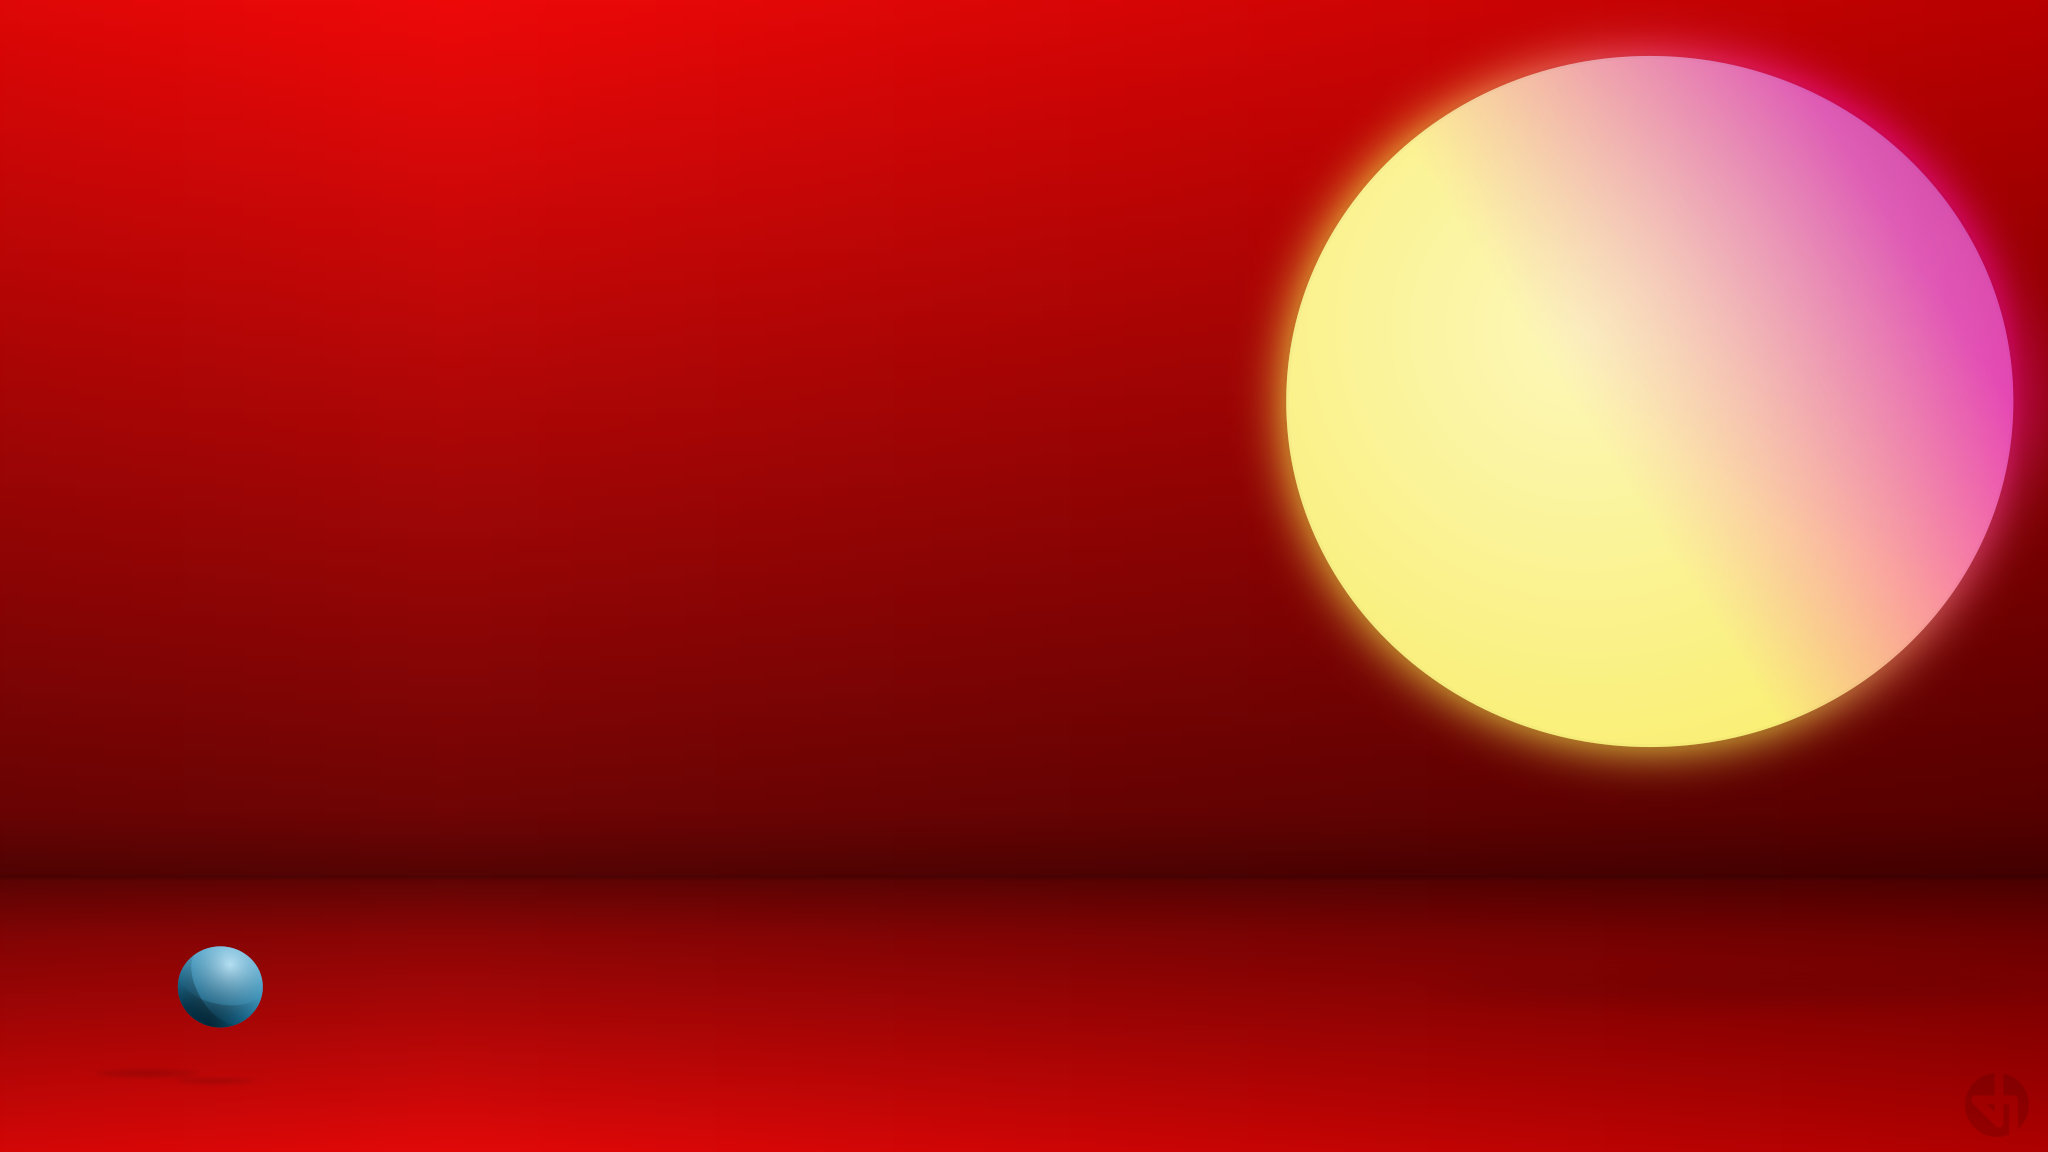 A desktop wallpaper that tries to show how a ball lights up with two sources of light.